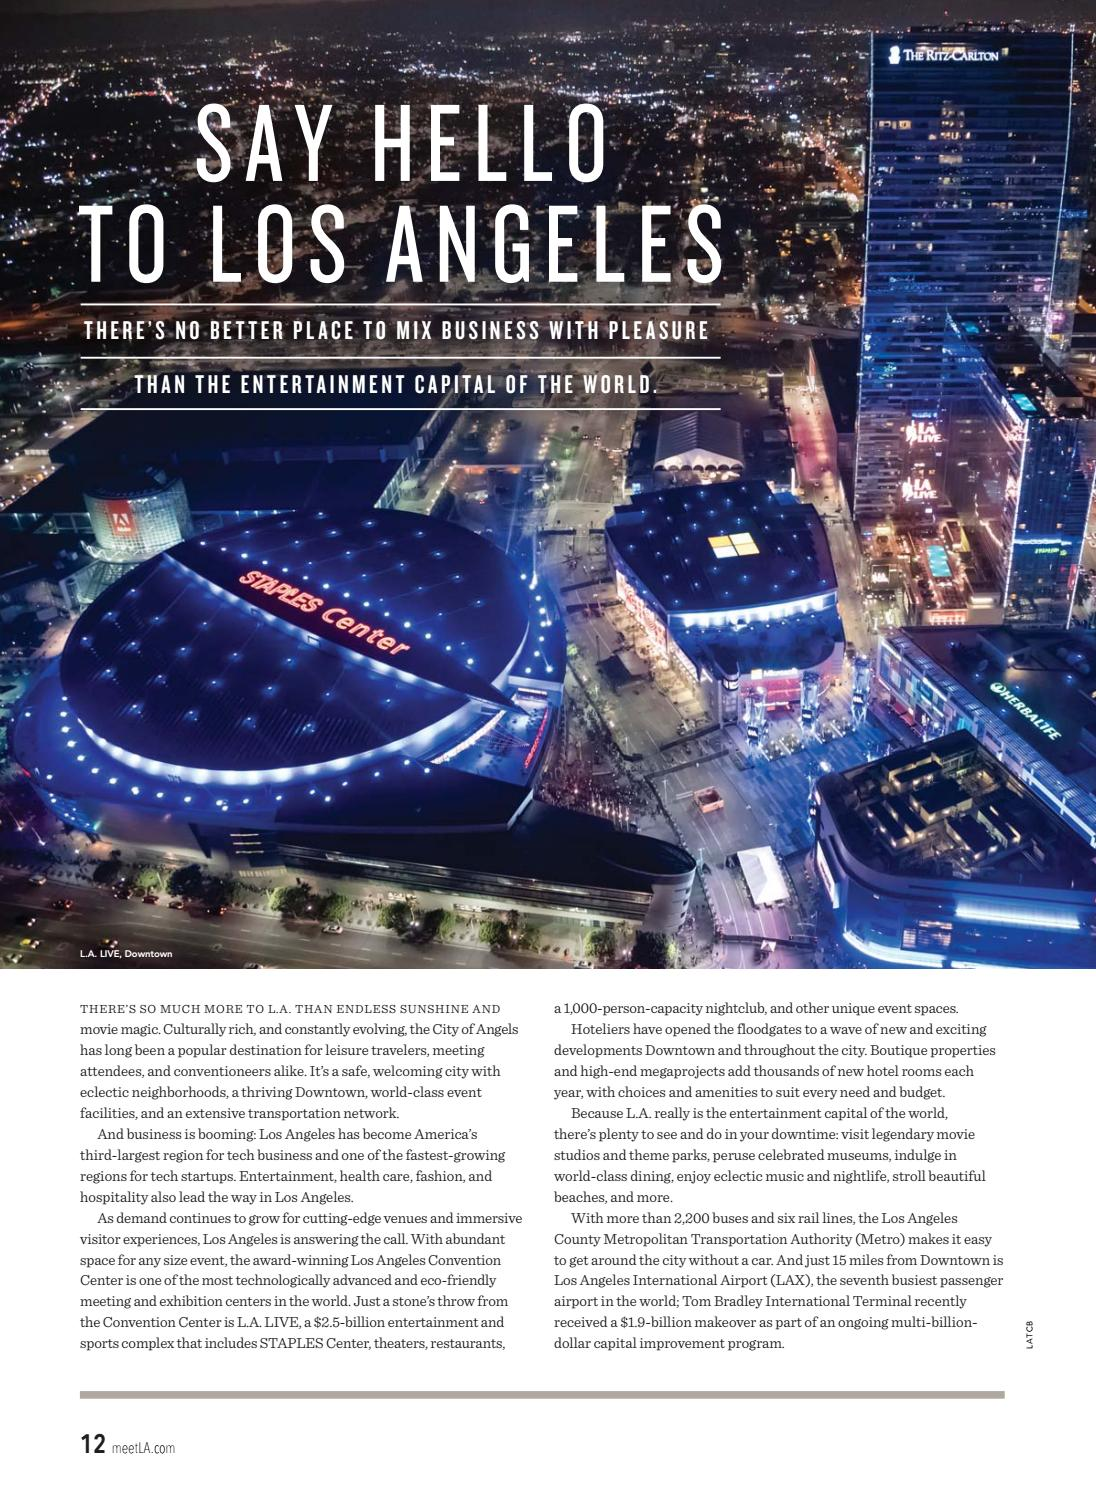 Los Angeles Meeting & Travel Professionals Guide by LAMCP